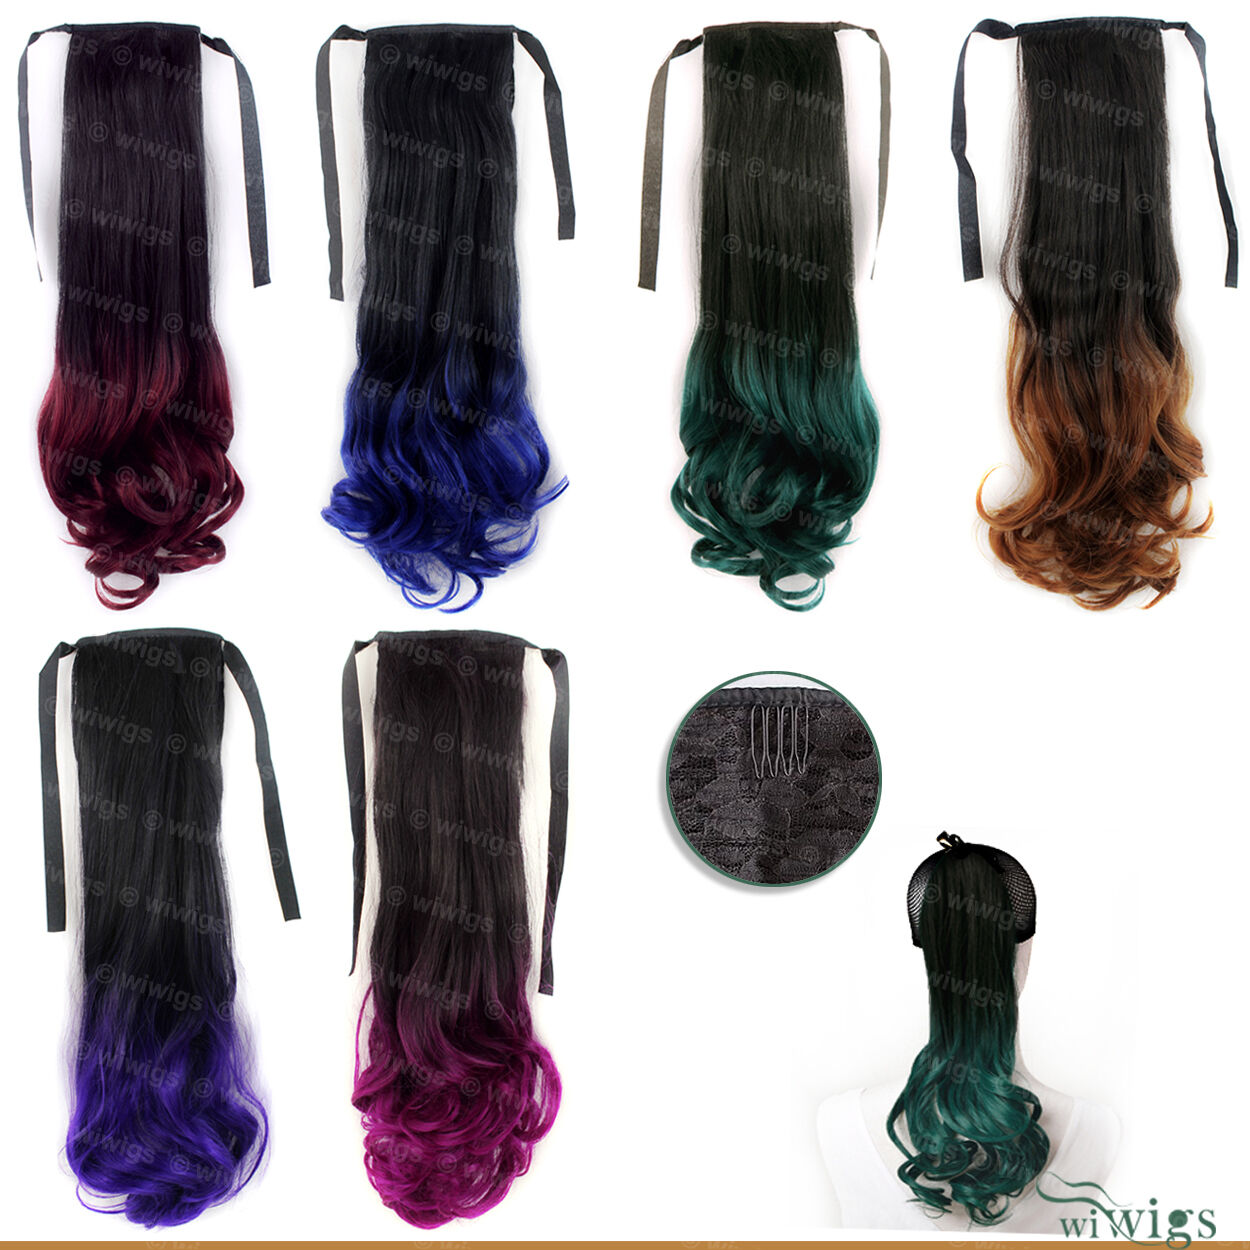 Wiwigs Dip Dye Ombre Black Green Red Blue Purple Hairpiece Ponytail